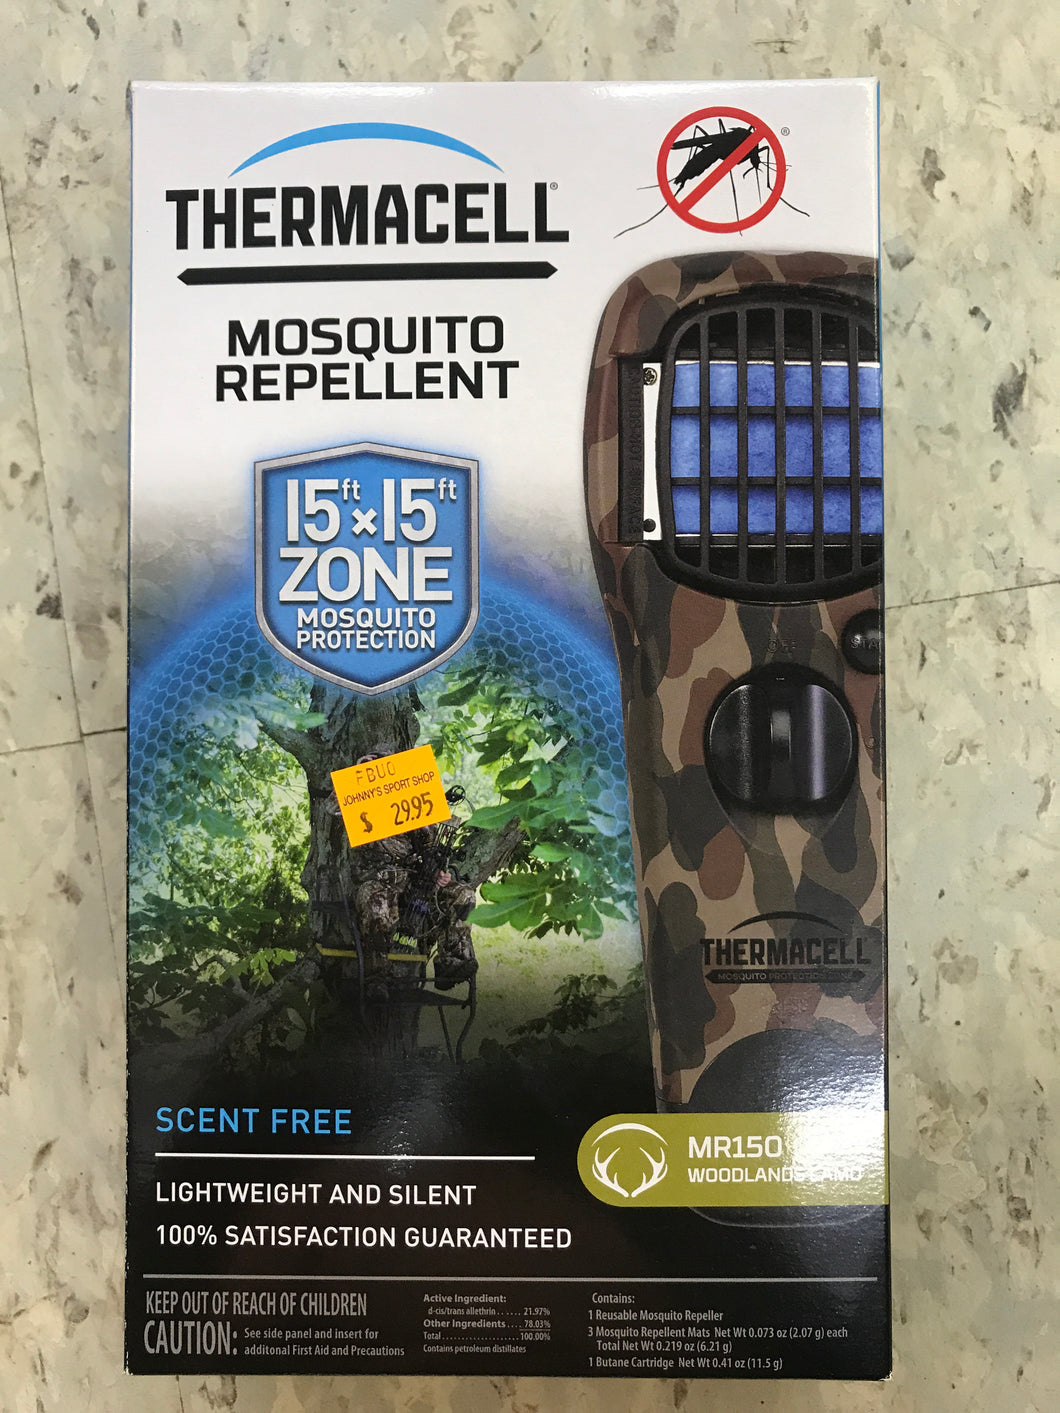 Thermacell Mosquito Repellent 15x15